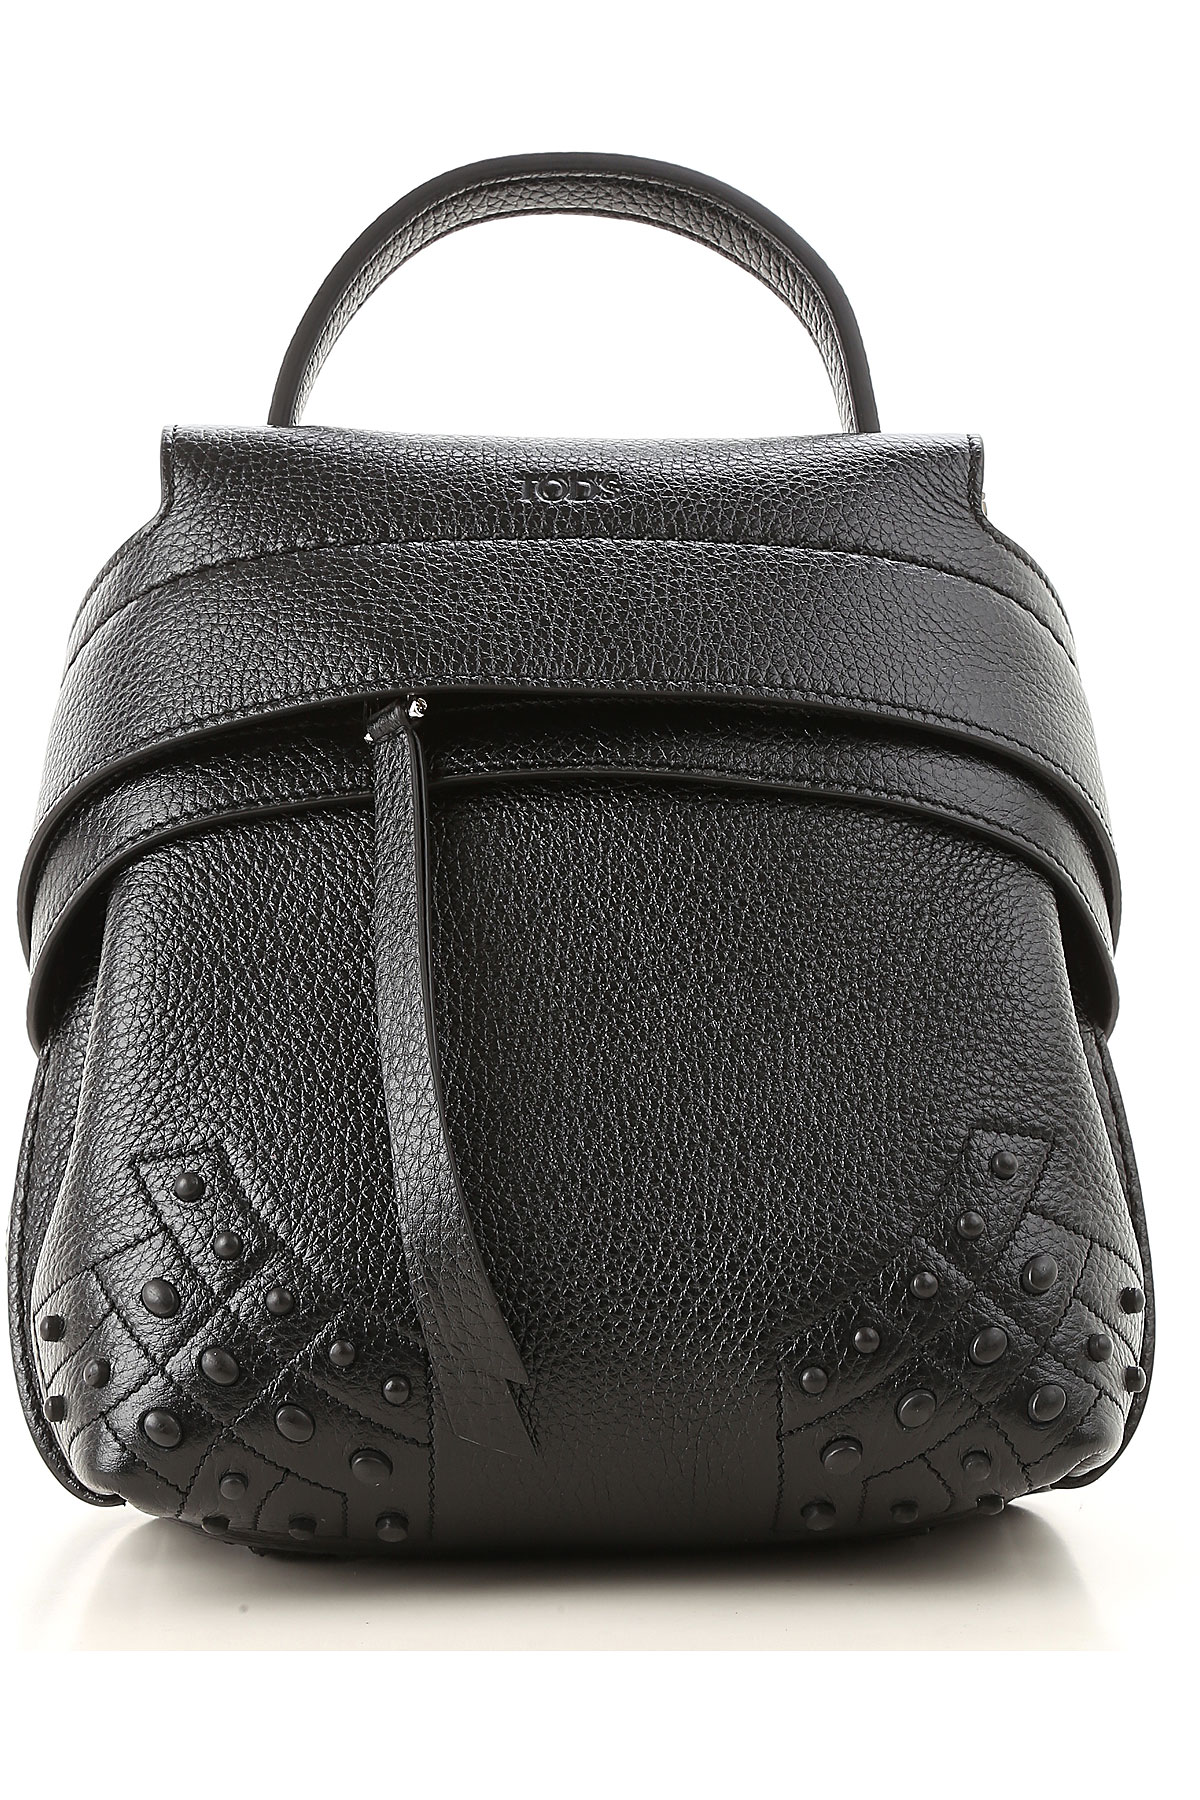 Image of Tods Backpack for Women, Black, Leather, 2017